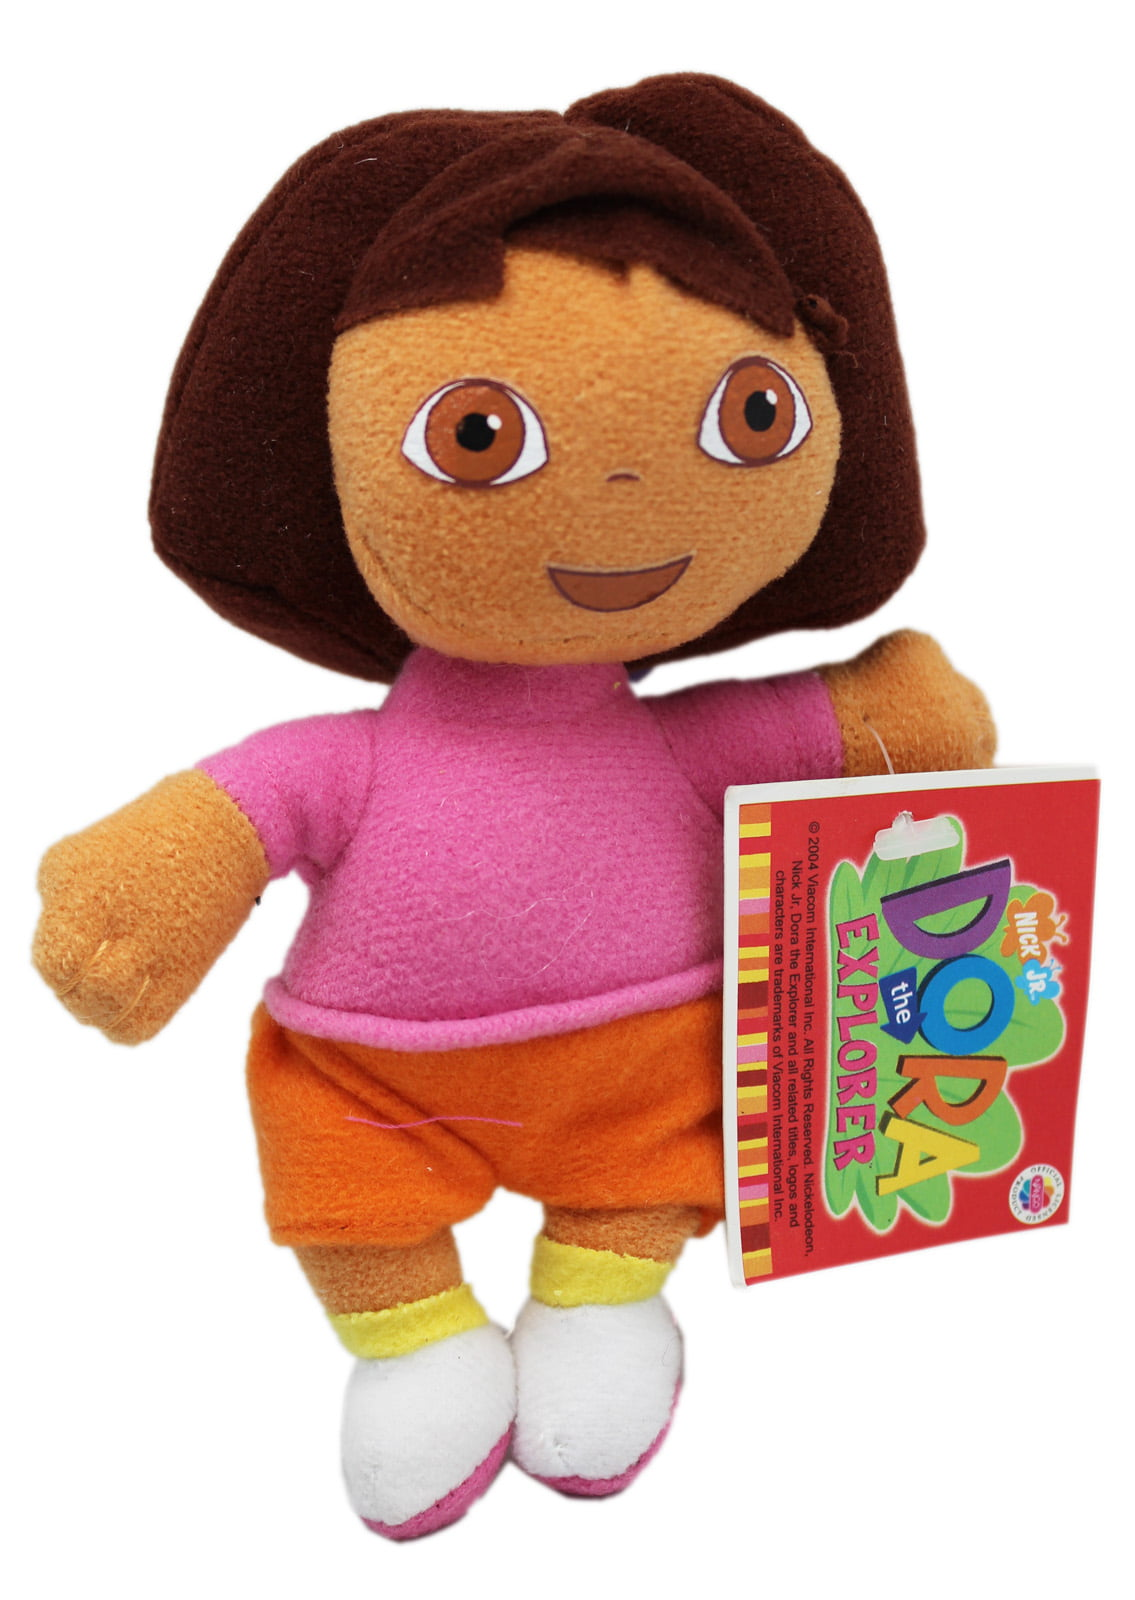 Nick Jr's Dora the Explorer Miniature Kids Plush Toy (5in) by